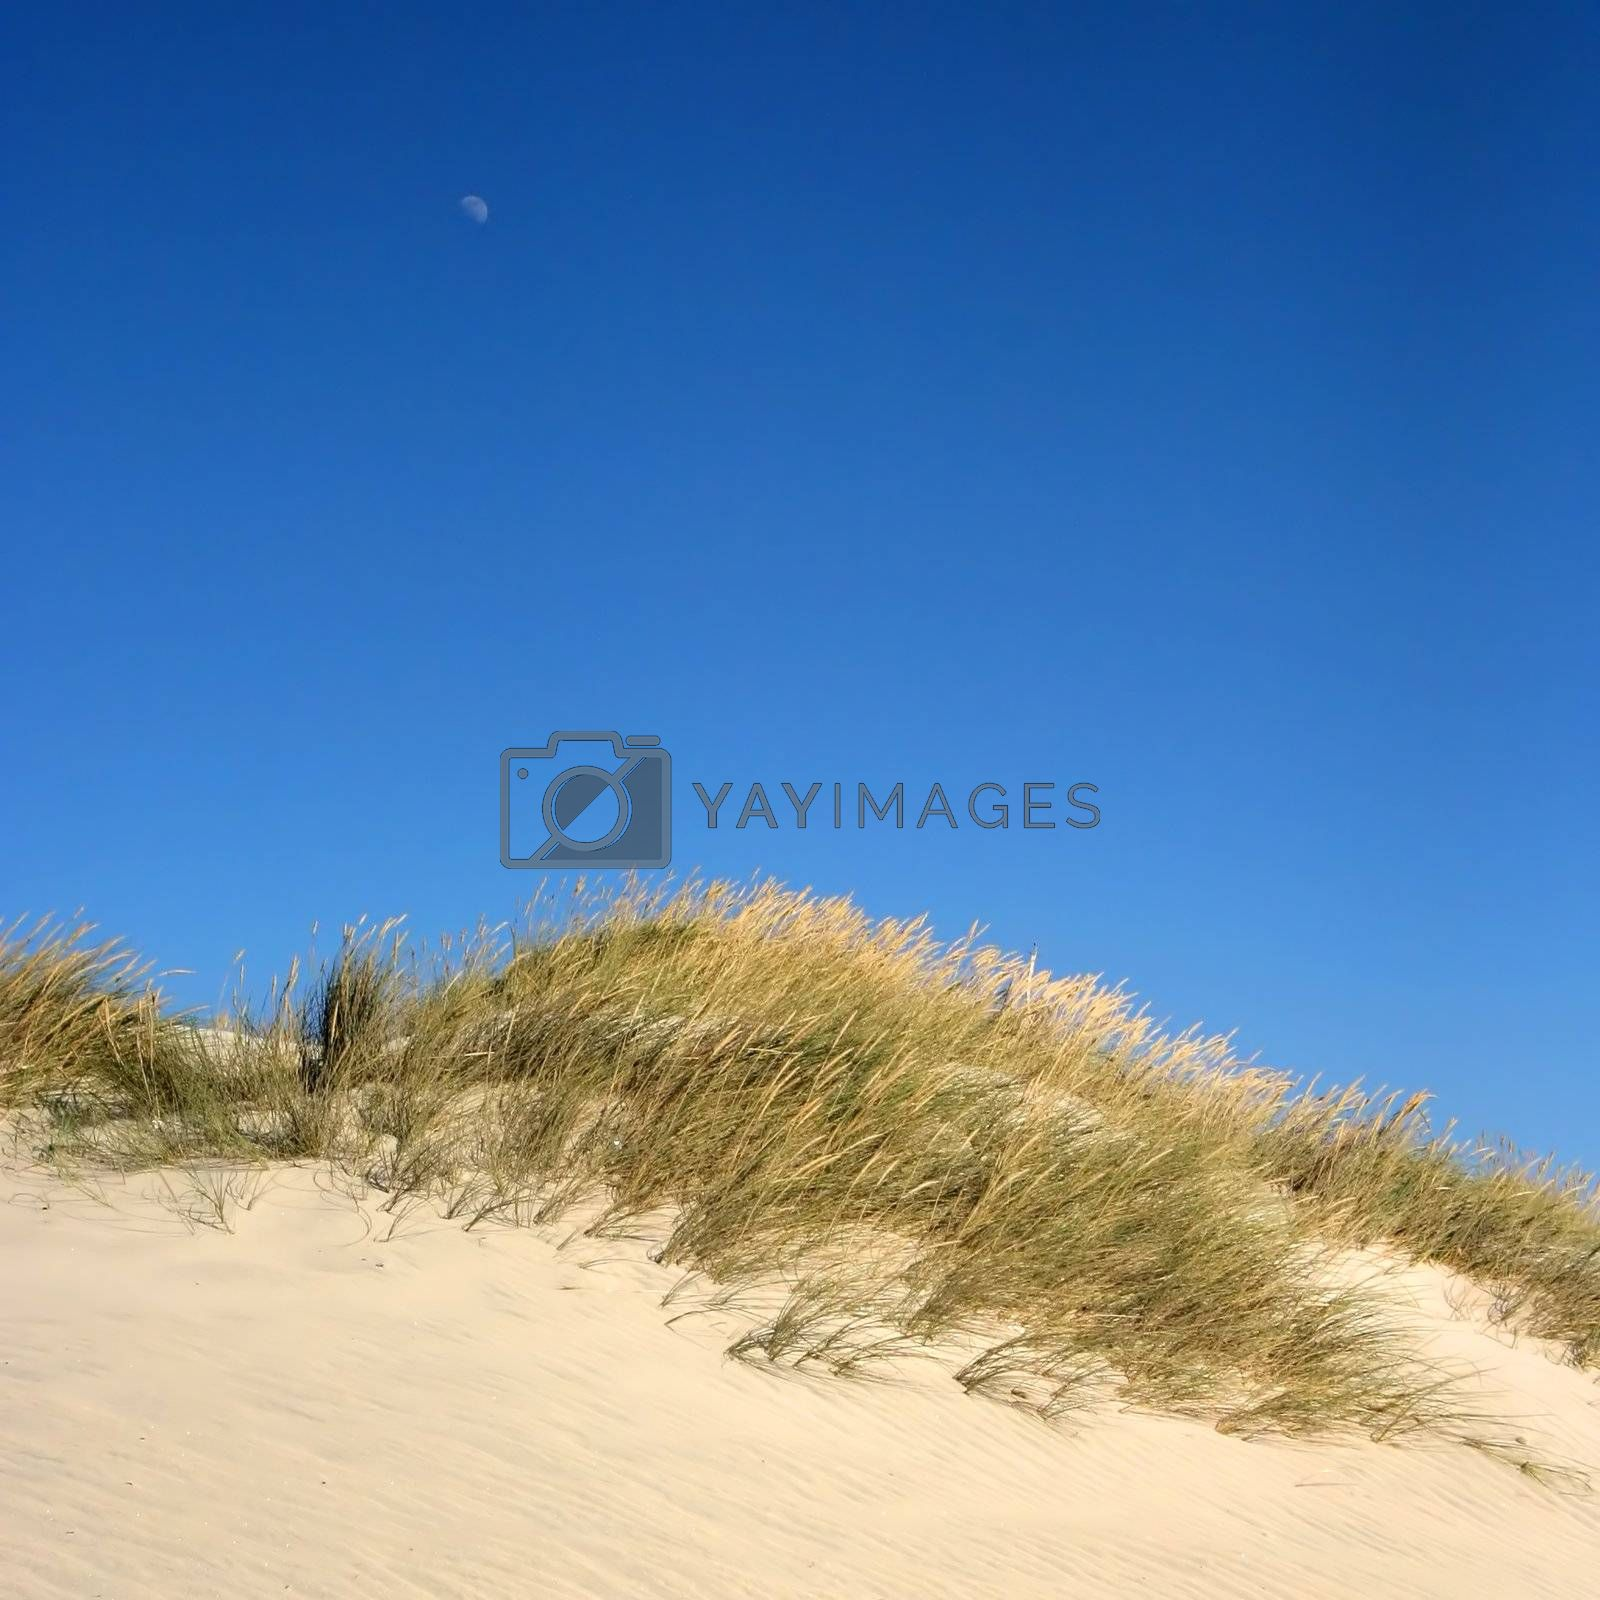 Dune with deep blue sky and the moon